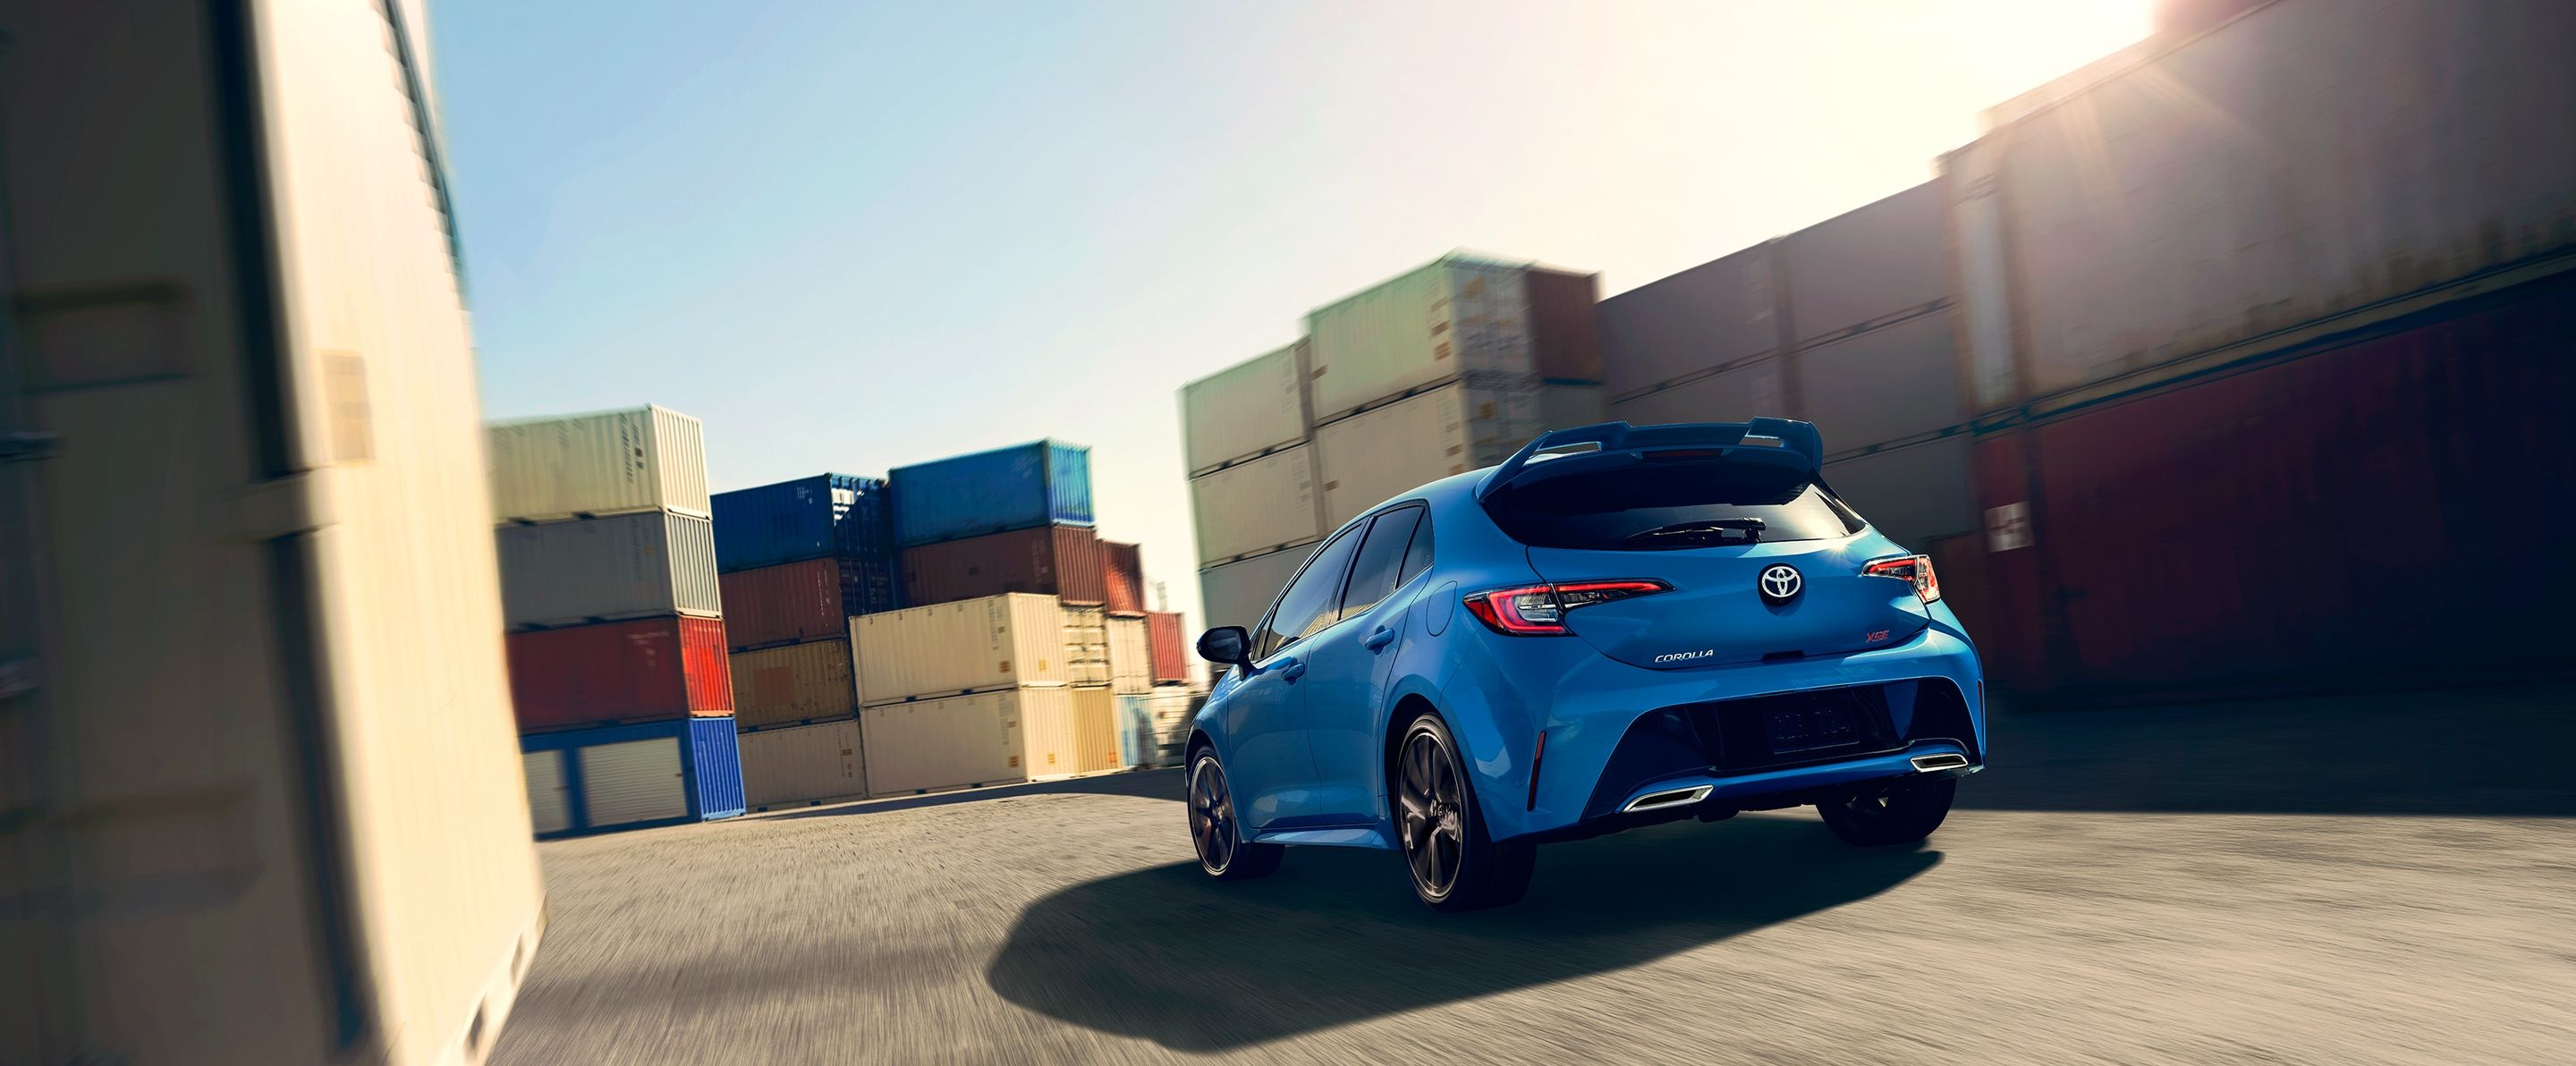 2019 Toyota Corolla Hatchback for Sale near Merriam, KS, 65740